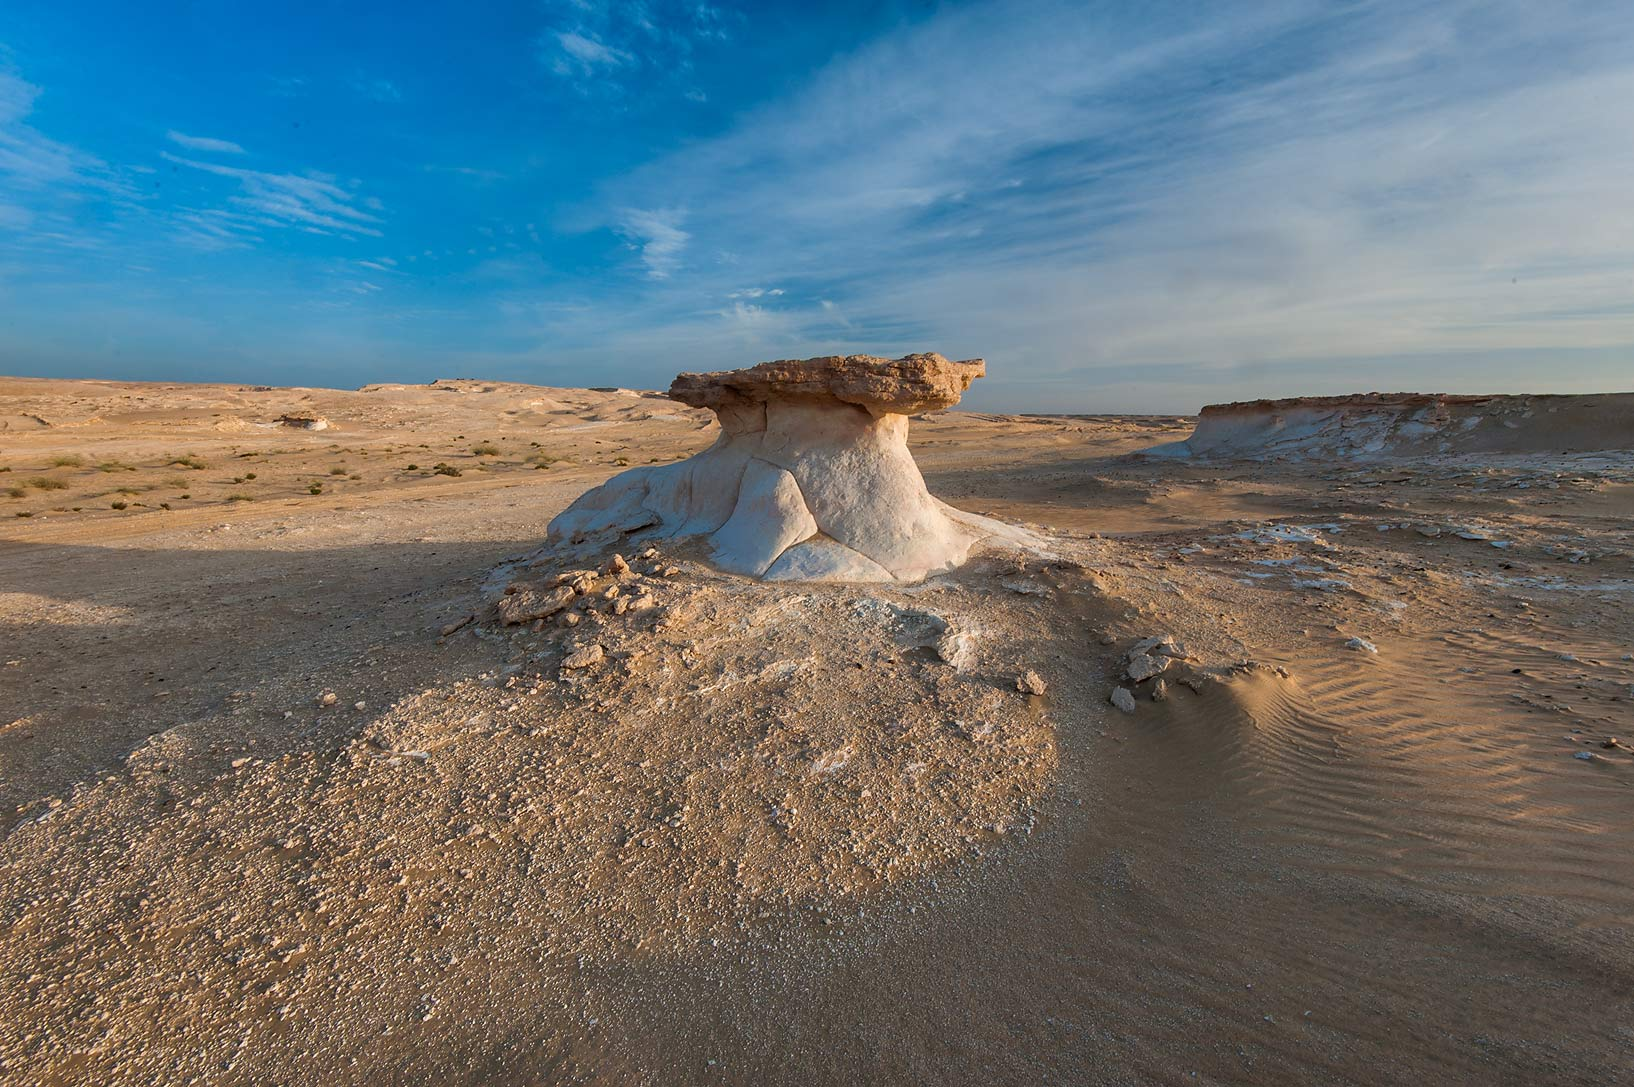 Limestone mushroom in area of Jebel Al-Nakhsh (Khashm an Nakhsh). South-western Qatar